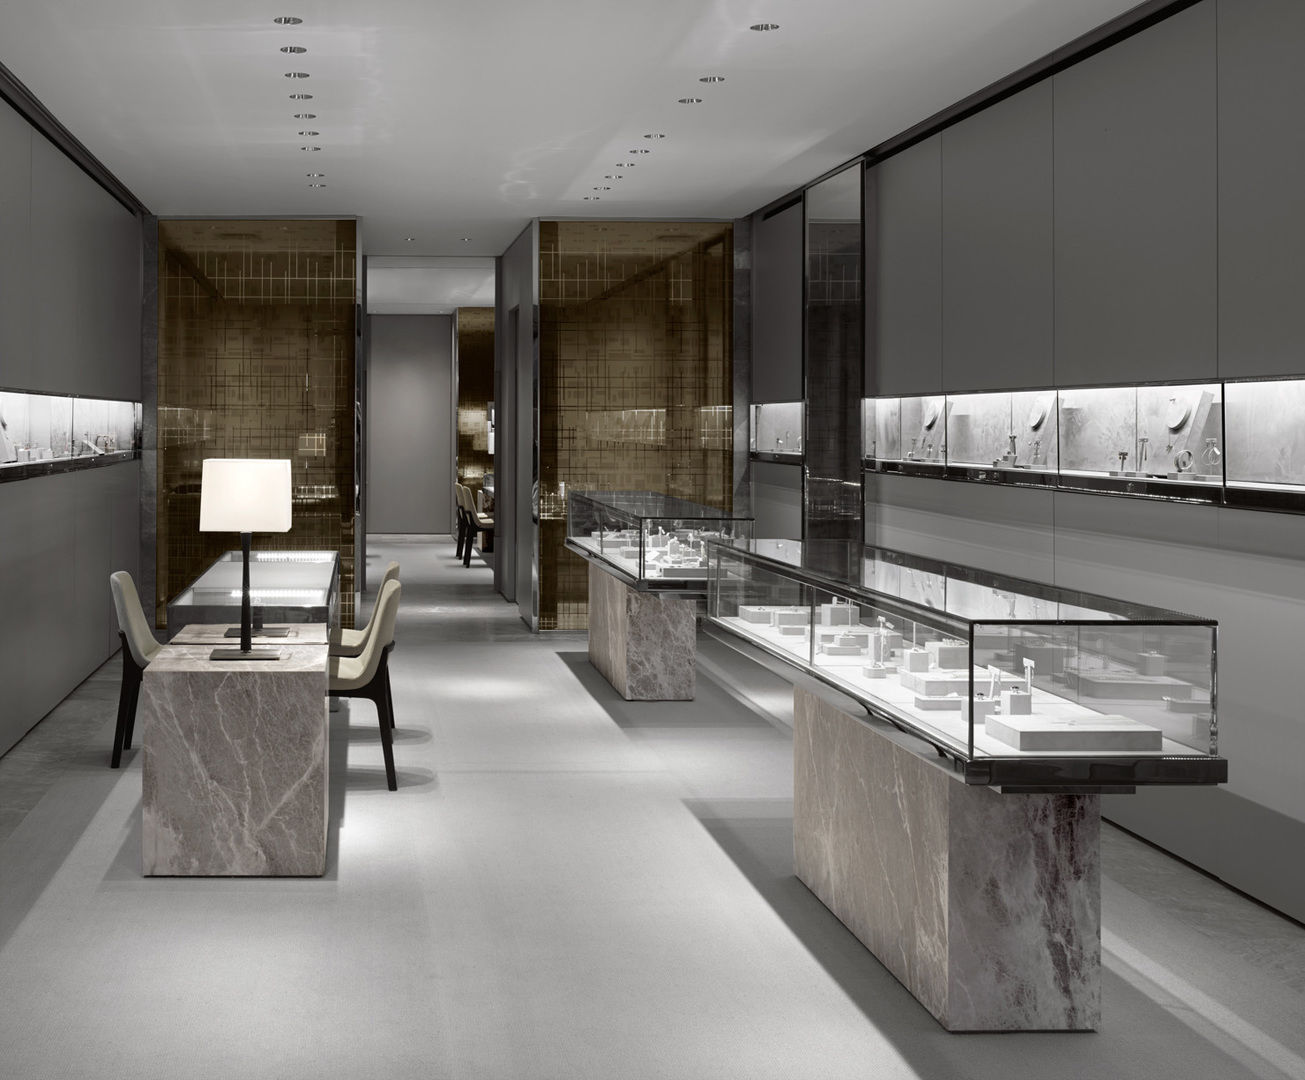 1000 images about retail design on pinterest real for Jewellery showrooms interior designs